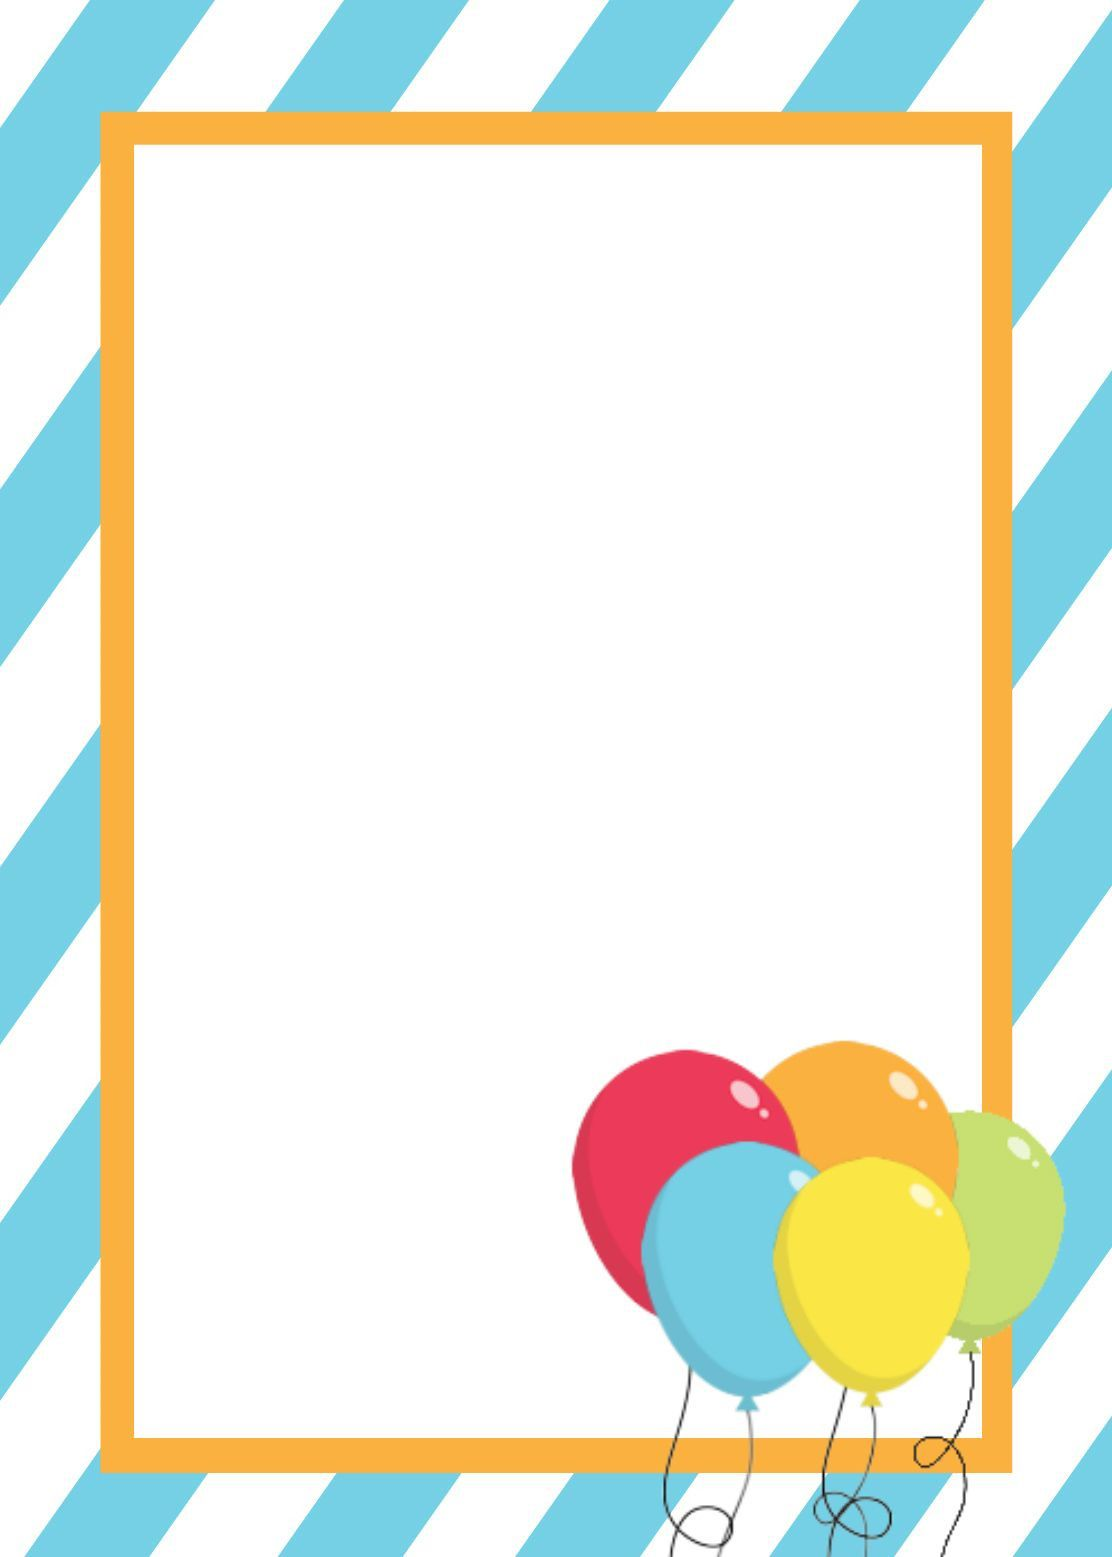 001 Fantastic Blank Birthday Card Template Picture  Word Free Printable Greeting DownloadFull